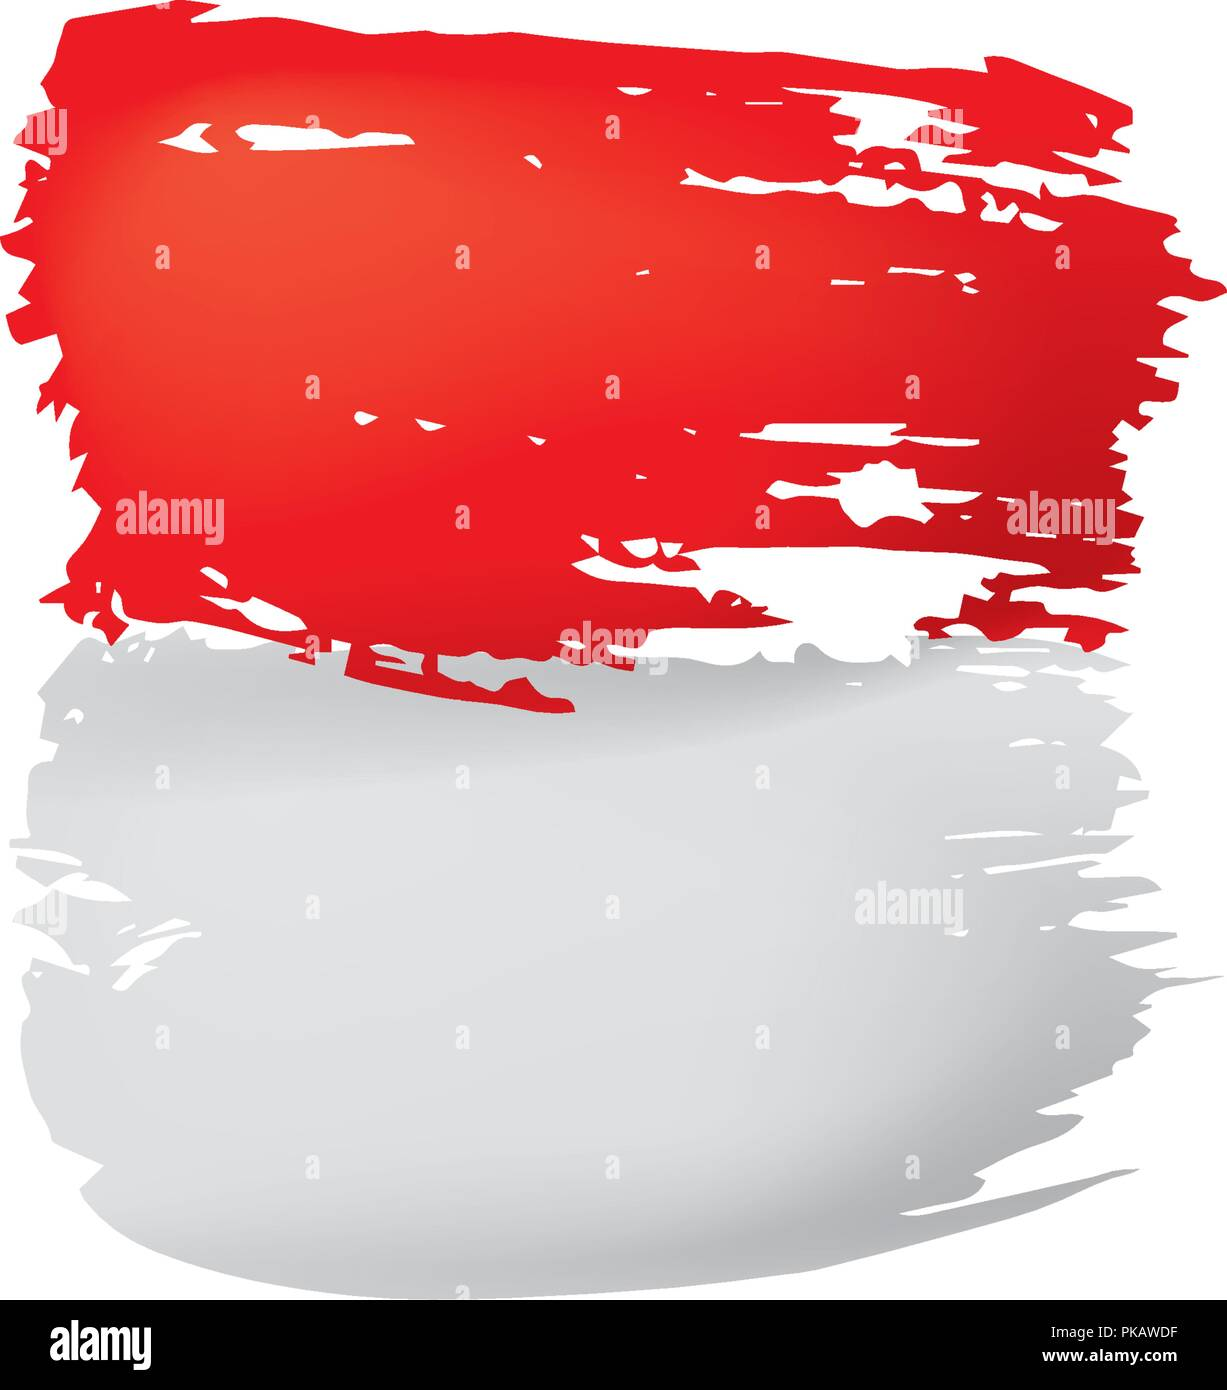 Indonesia Flag, Vector Illustration On A White Background Stock Vector  Image & Art - Alamy